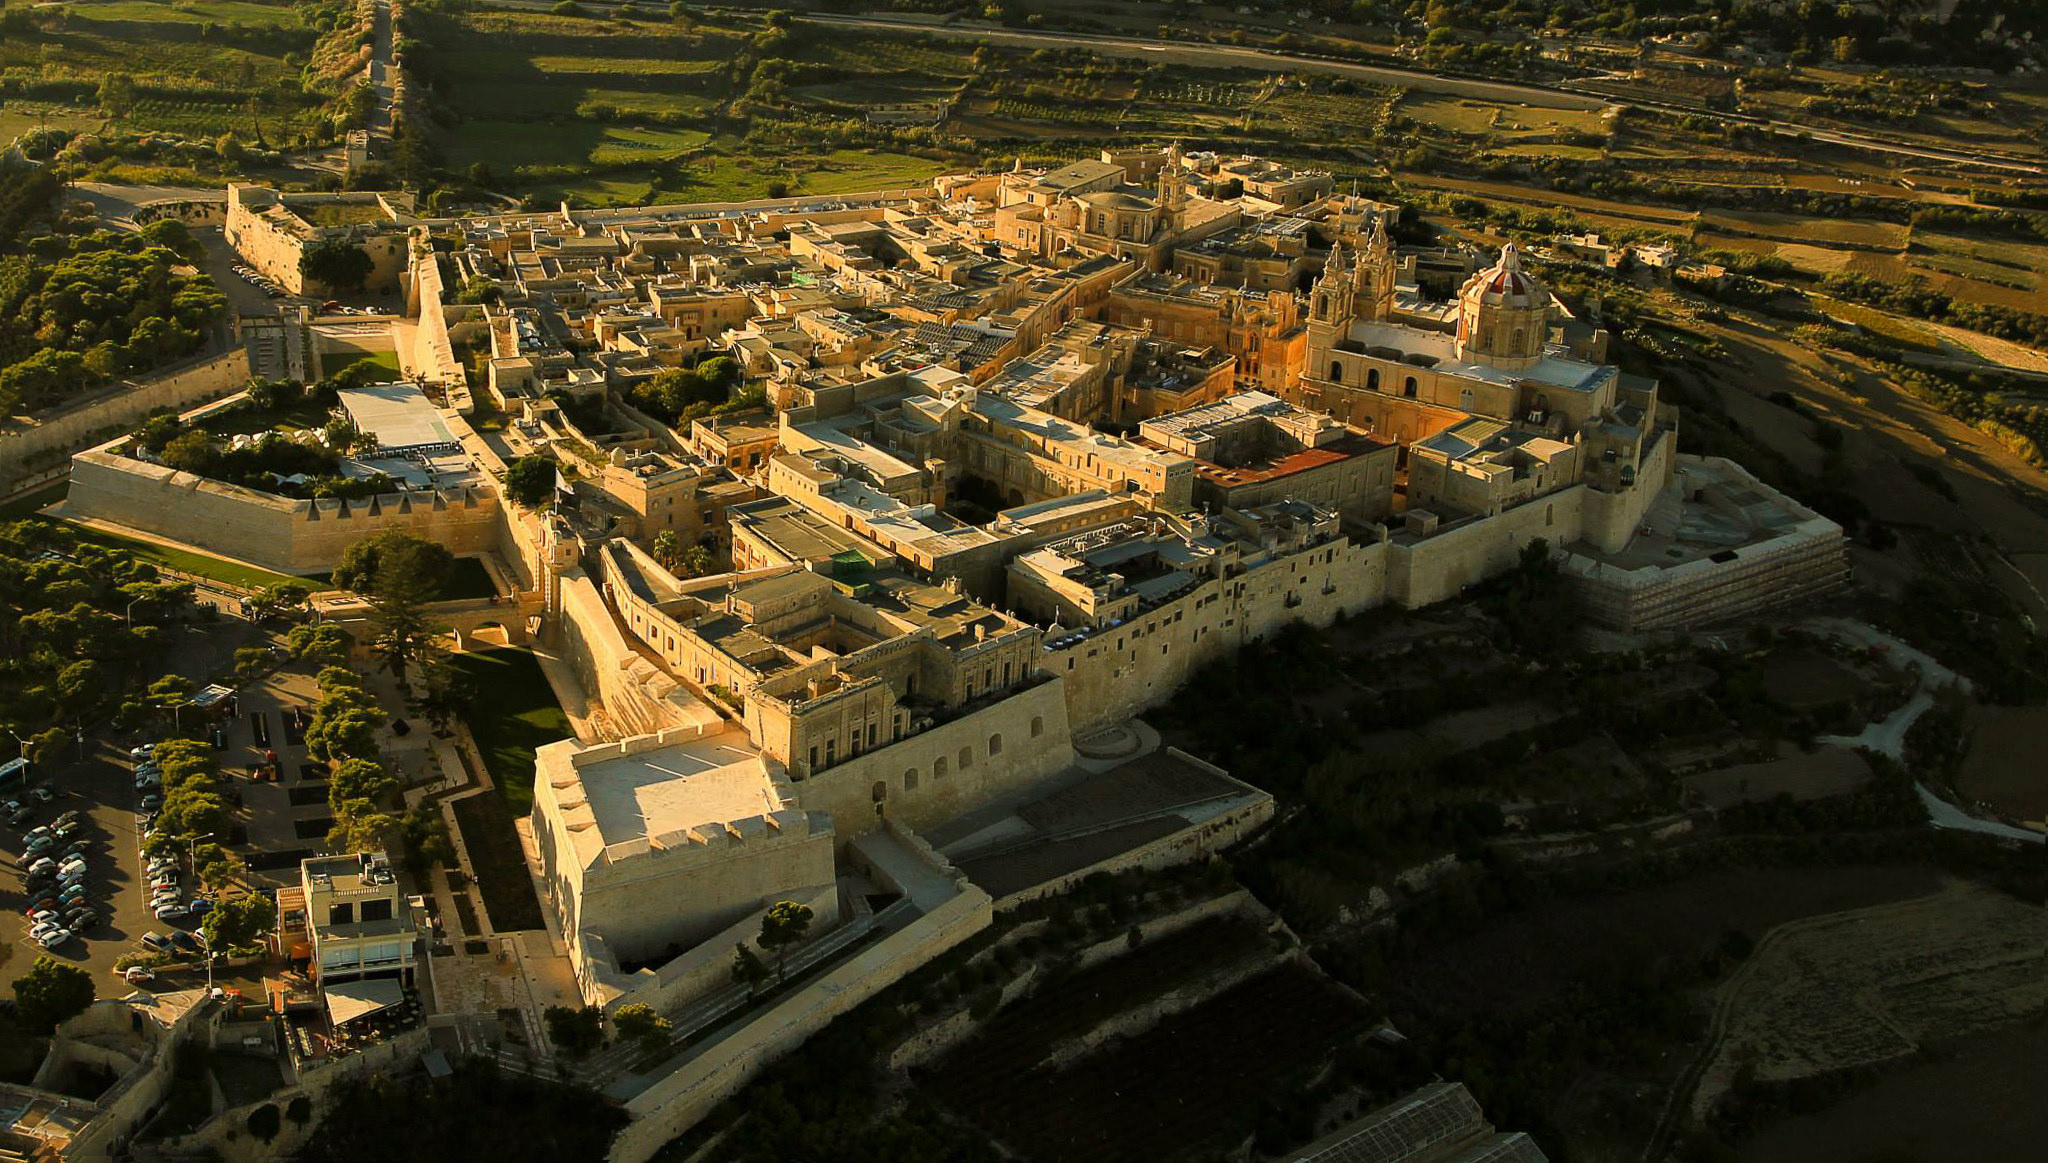 https://upload.wikimedia.org/wikipedia/commons/d/dd/Aerial_view_Mdina%2C_Malta.jpg